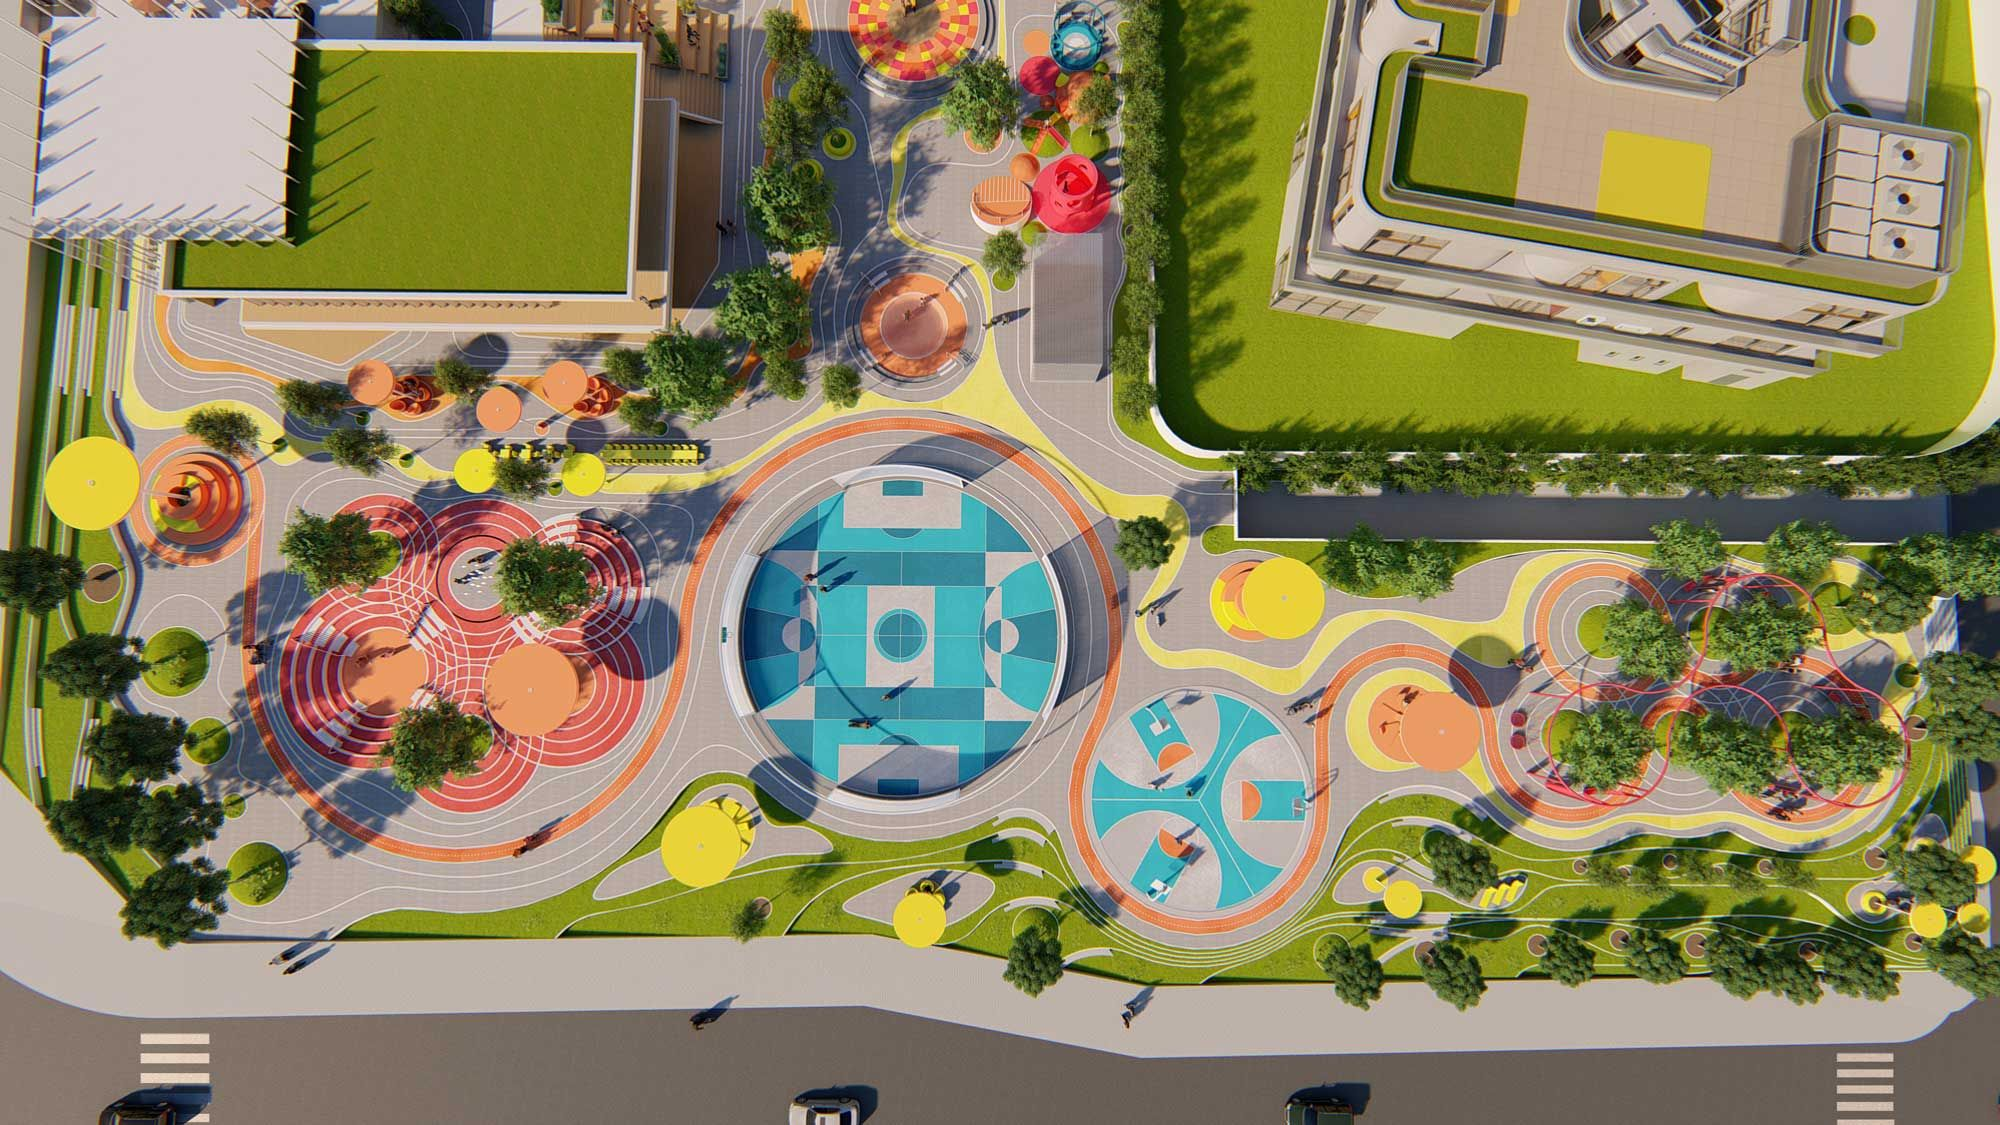 Doodle park 100architects in 2020 playground design